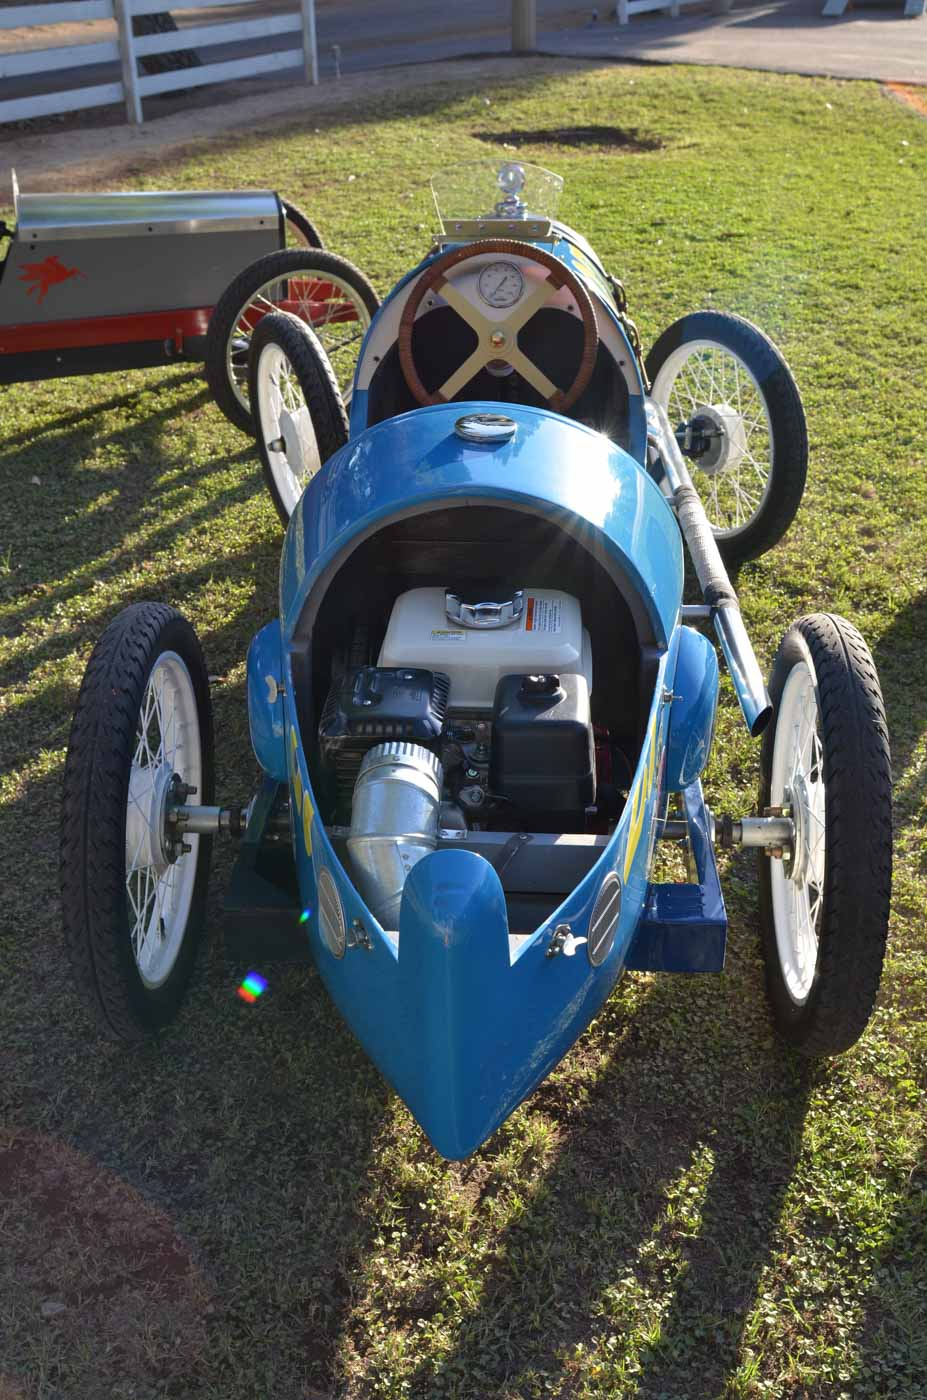 Petrol Prices In France >> Cheap, Fun, and Fast: You're Going to Want a Cyclekart • Petrolicious